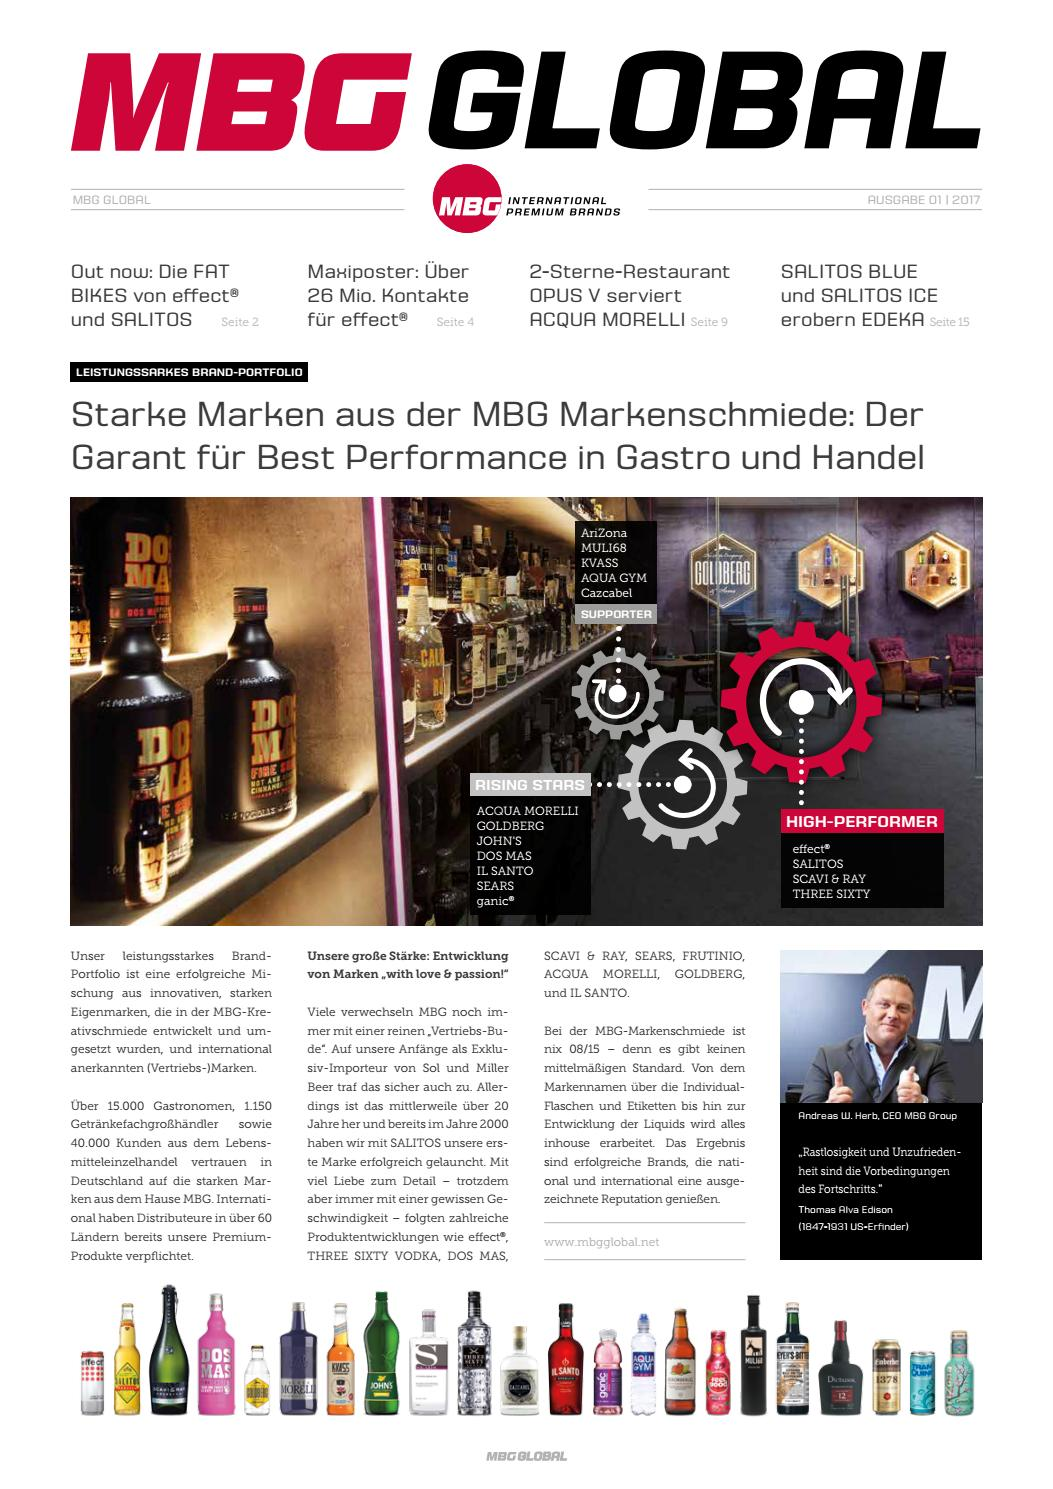 MBG Global Edition 01 - 2017 by MBG International Premium Brands - issuu